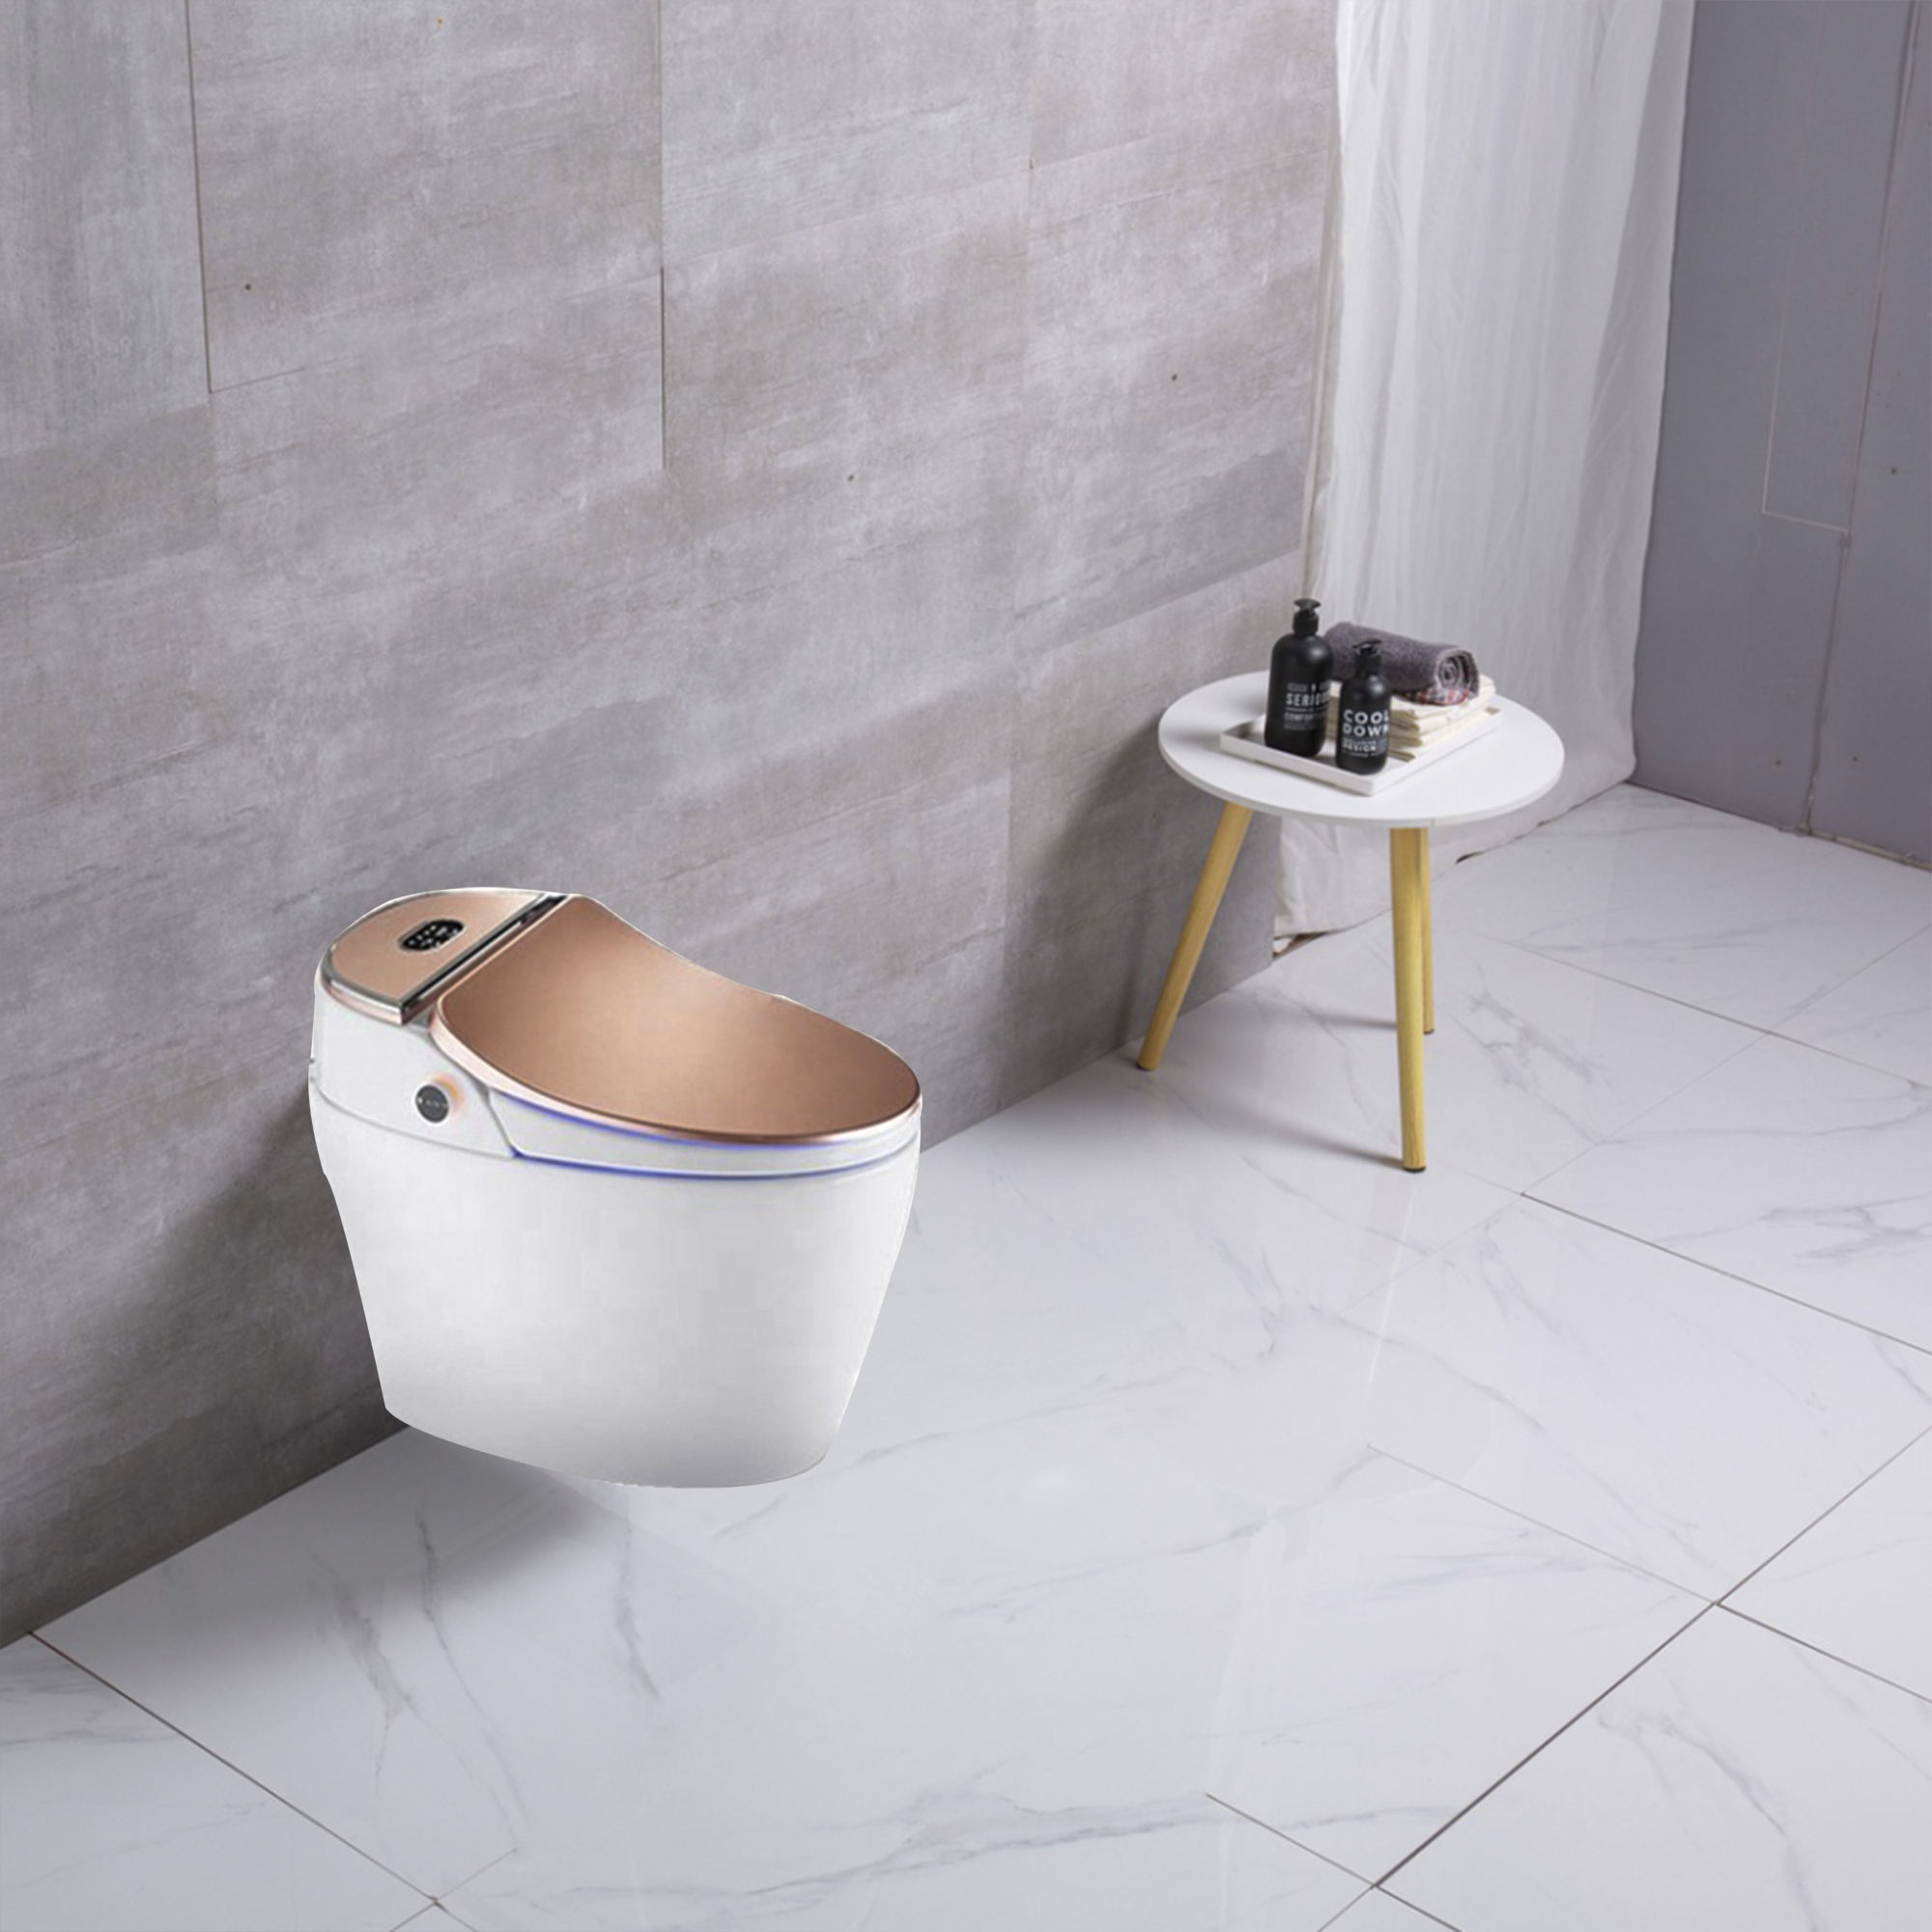 One piece Intelligent Water Closet Rose gold Floor mounted P-trap Smart Toilet